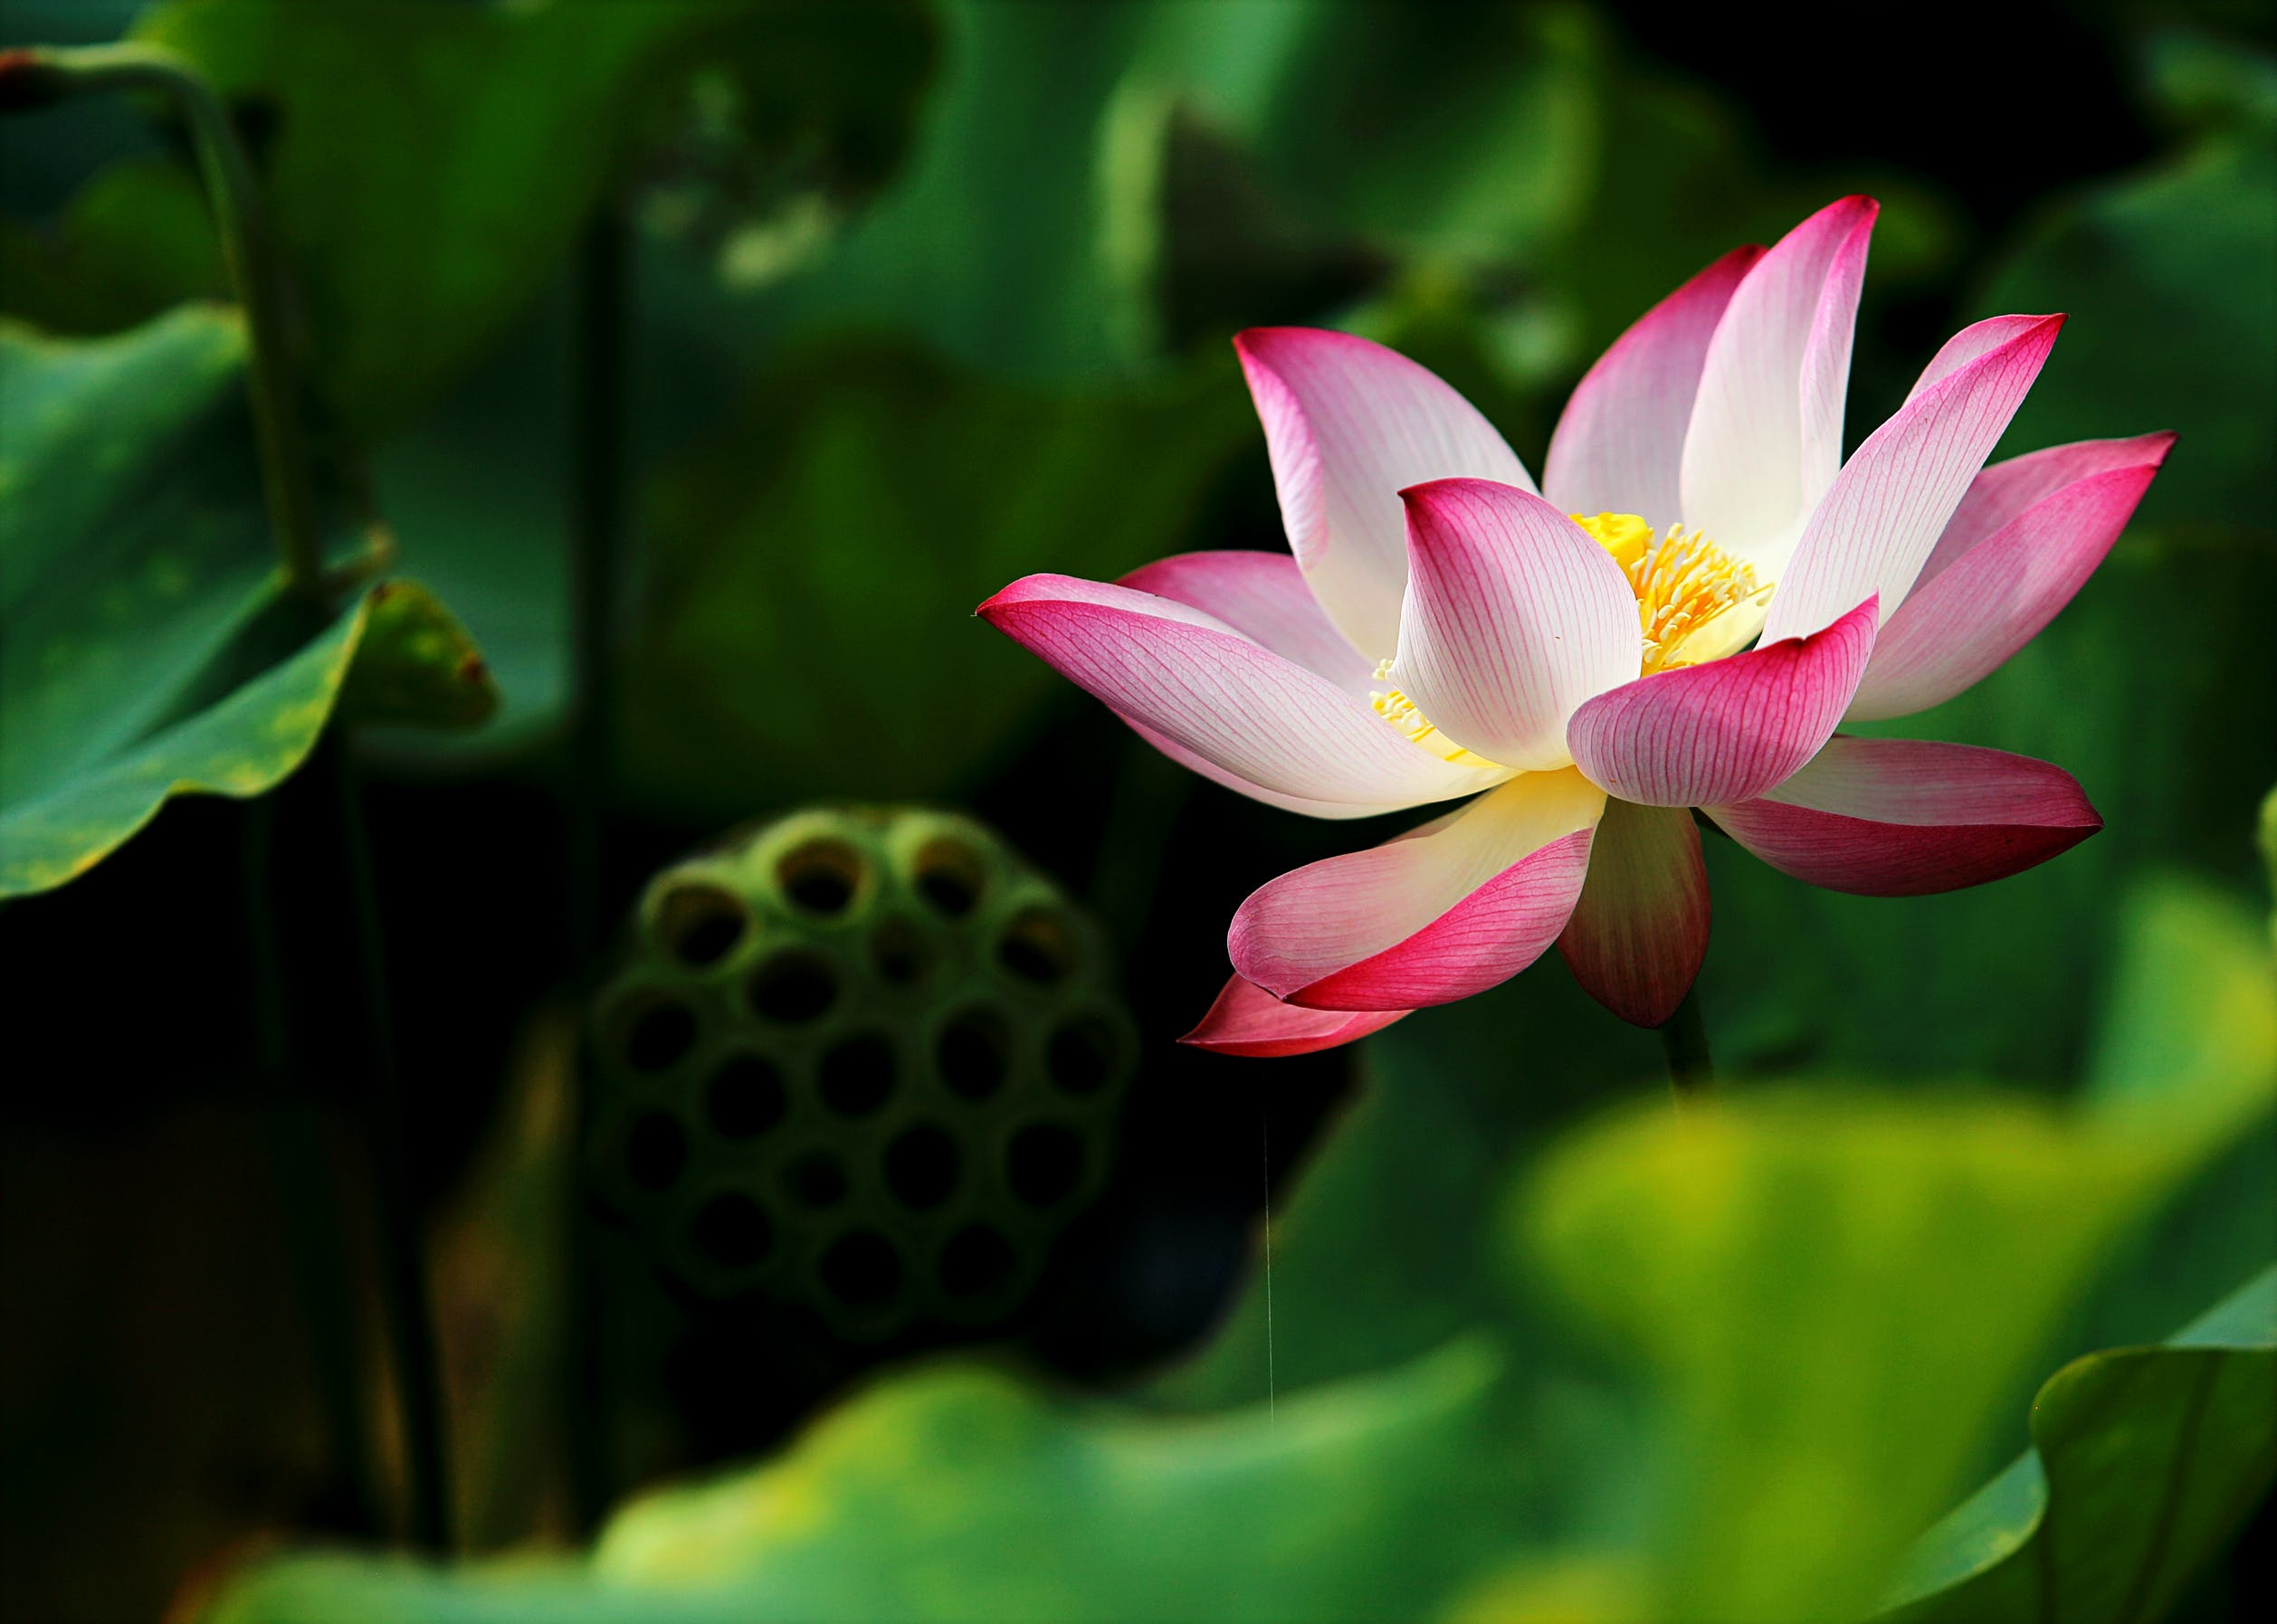 Shallow Focus Photography of White and Pink Flower